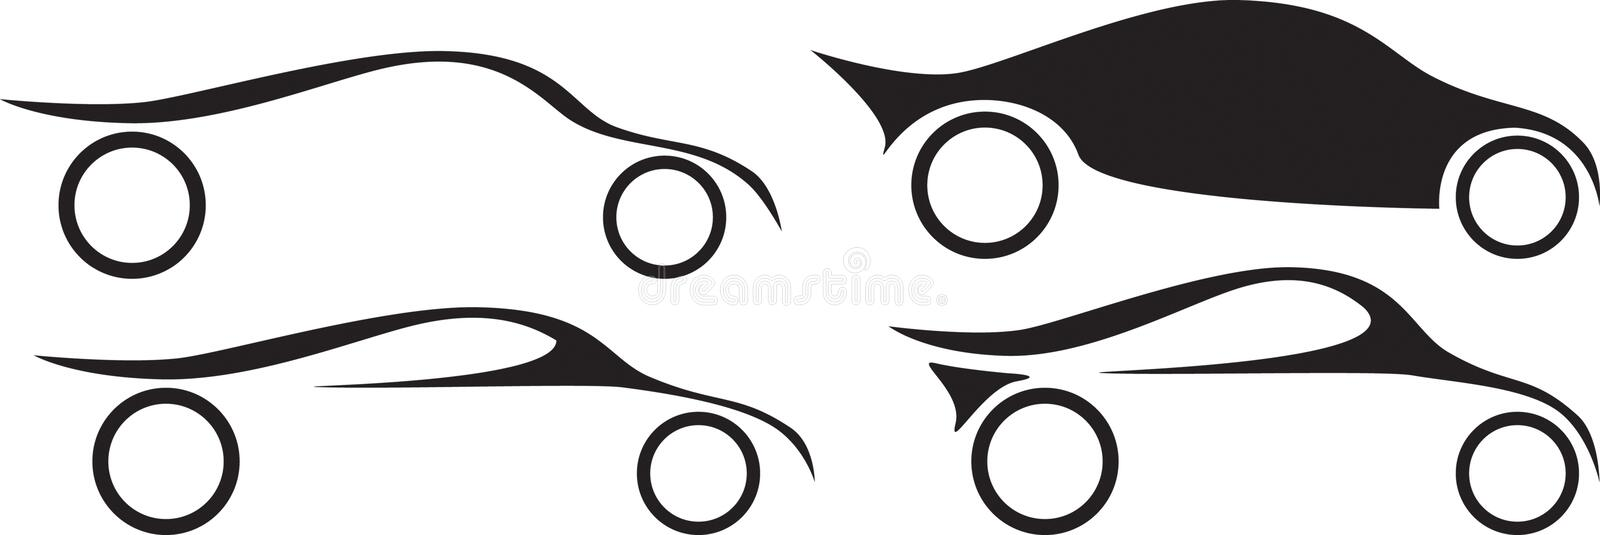 Company logo ideas for cars and motor sports royalty free illustration